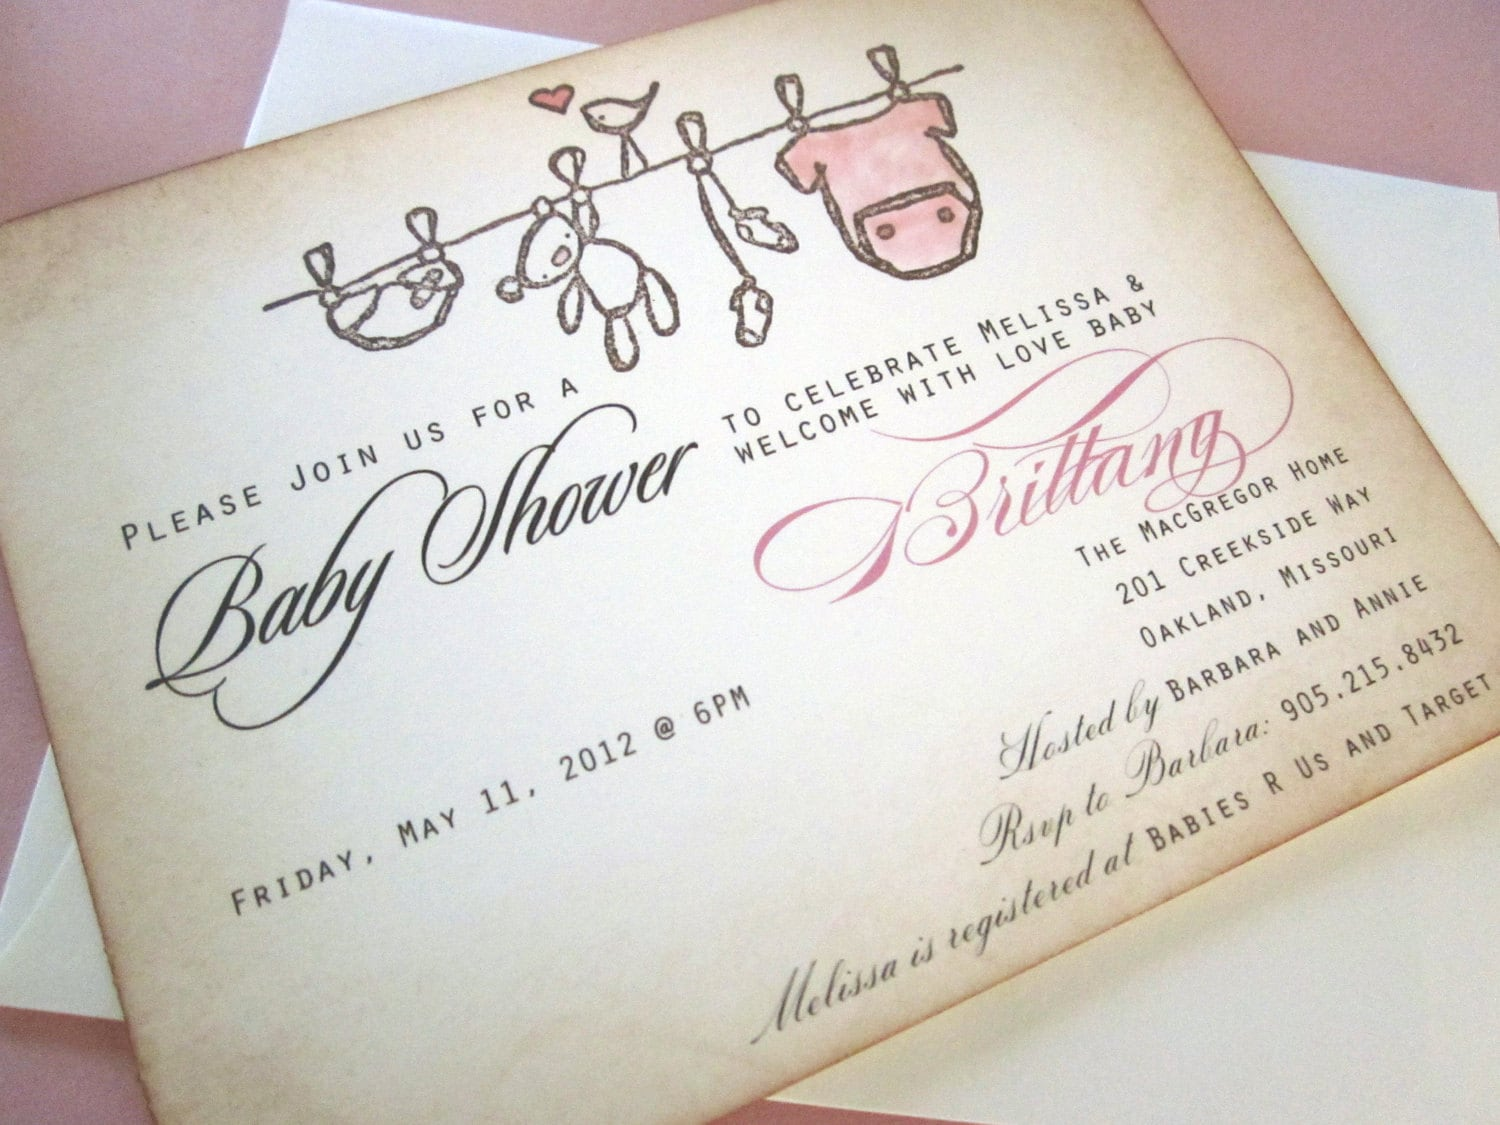 Baby Shower Invitation AS SEEN ON Disney Baby clothesline